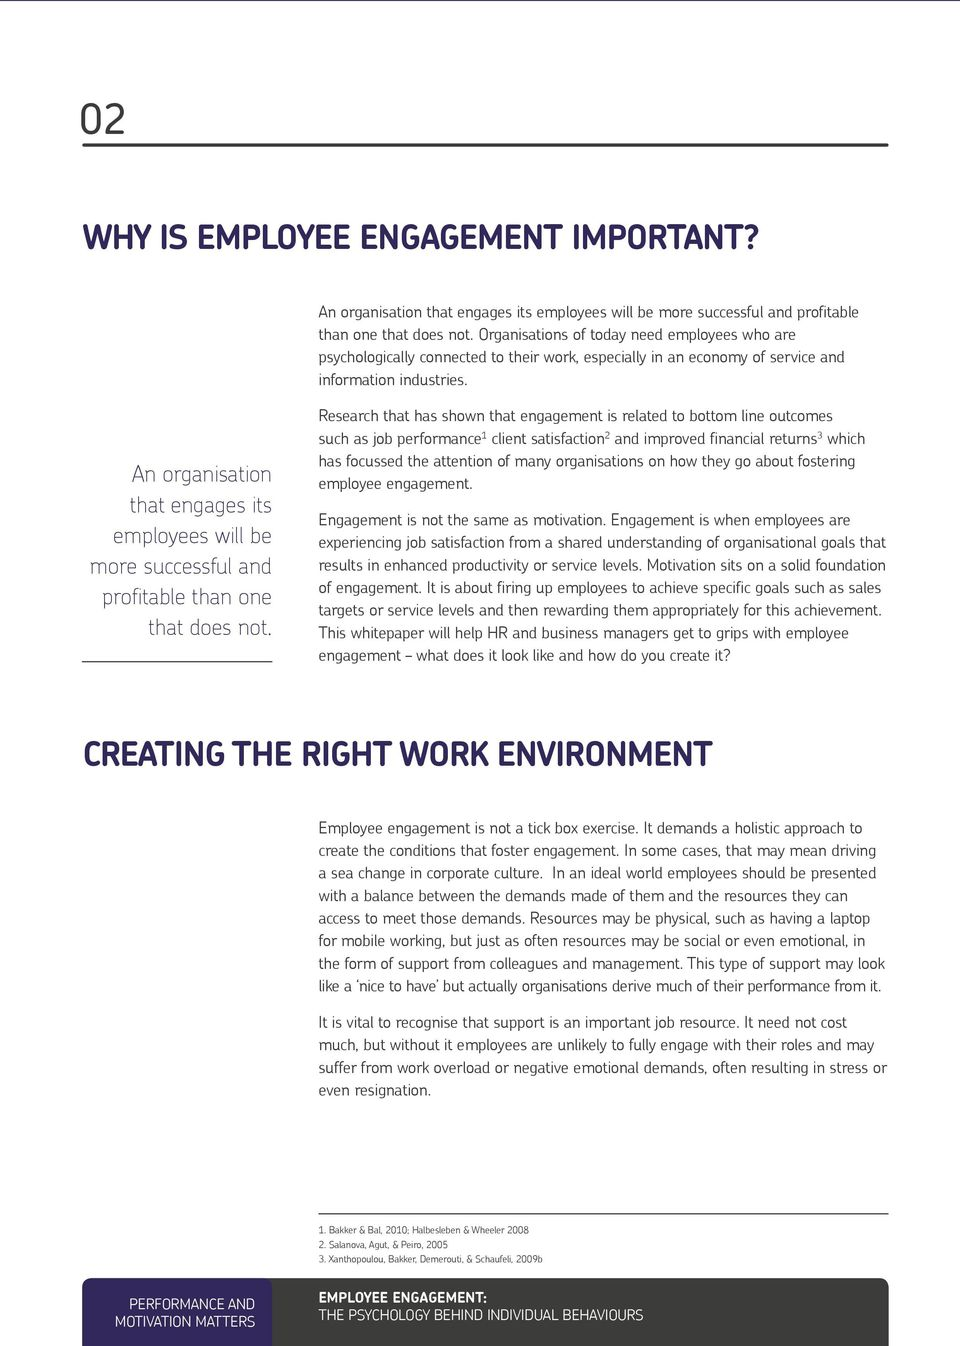 An organisation that engages its employees will be more successful and profitable than one that does not.